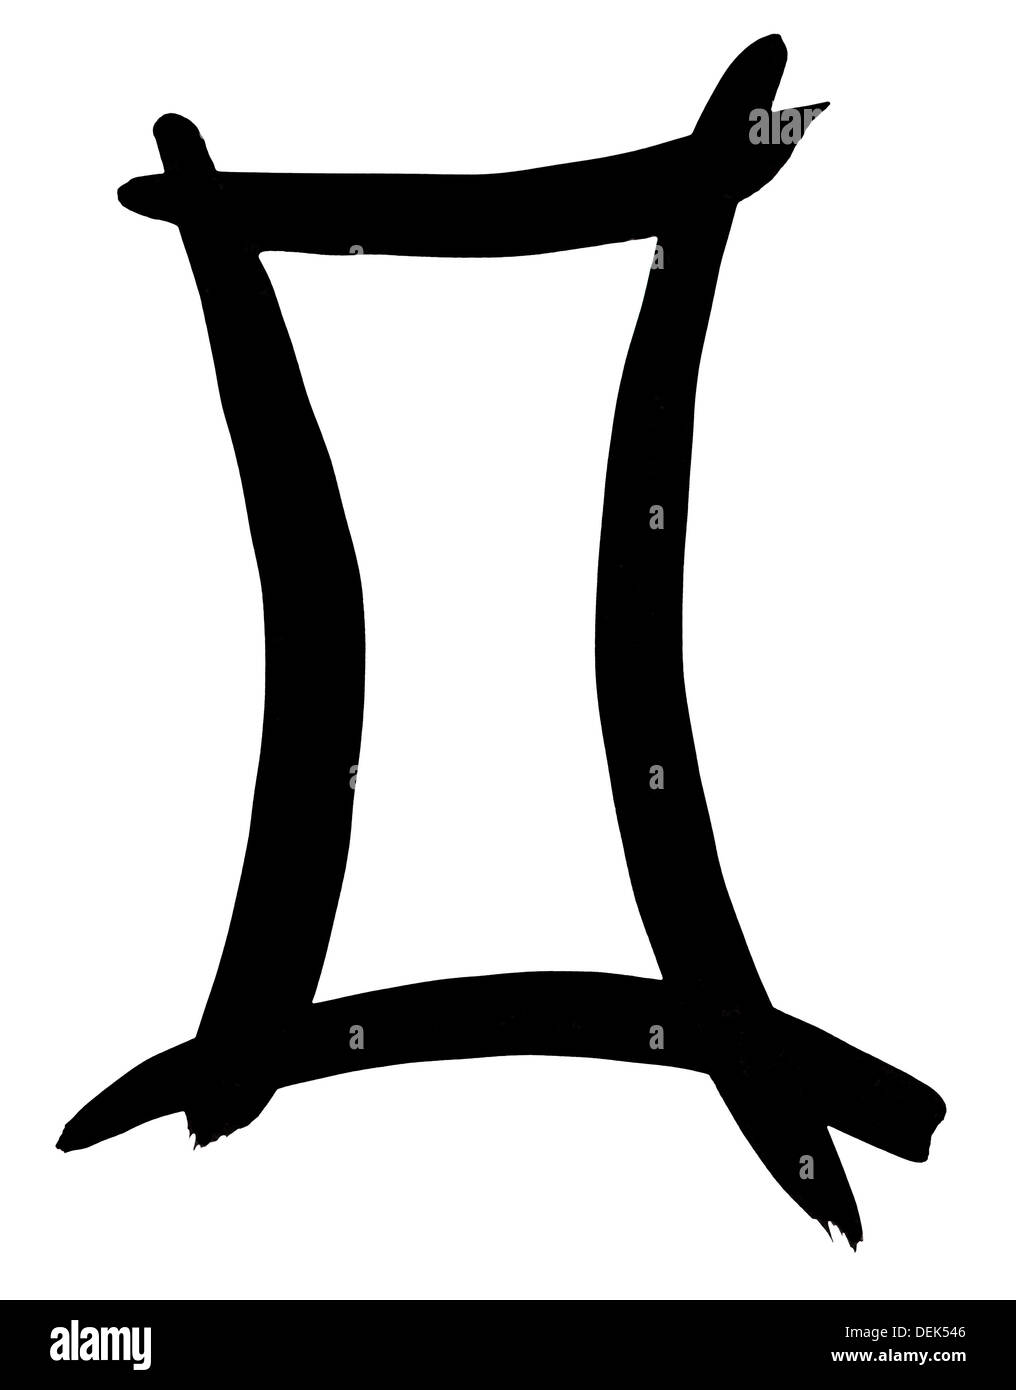 Arabic numeral 0 hand written in black ink on white background - Stock Image